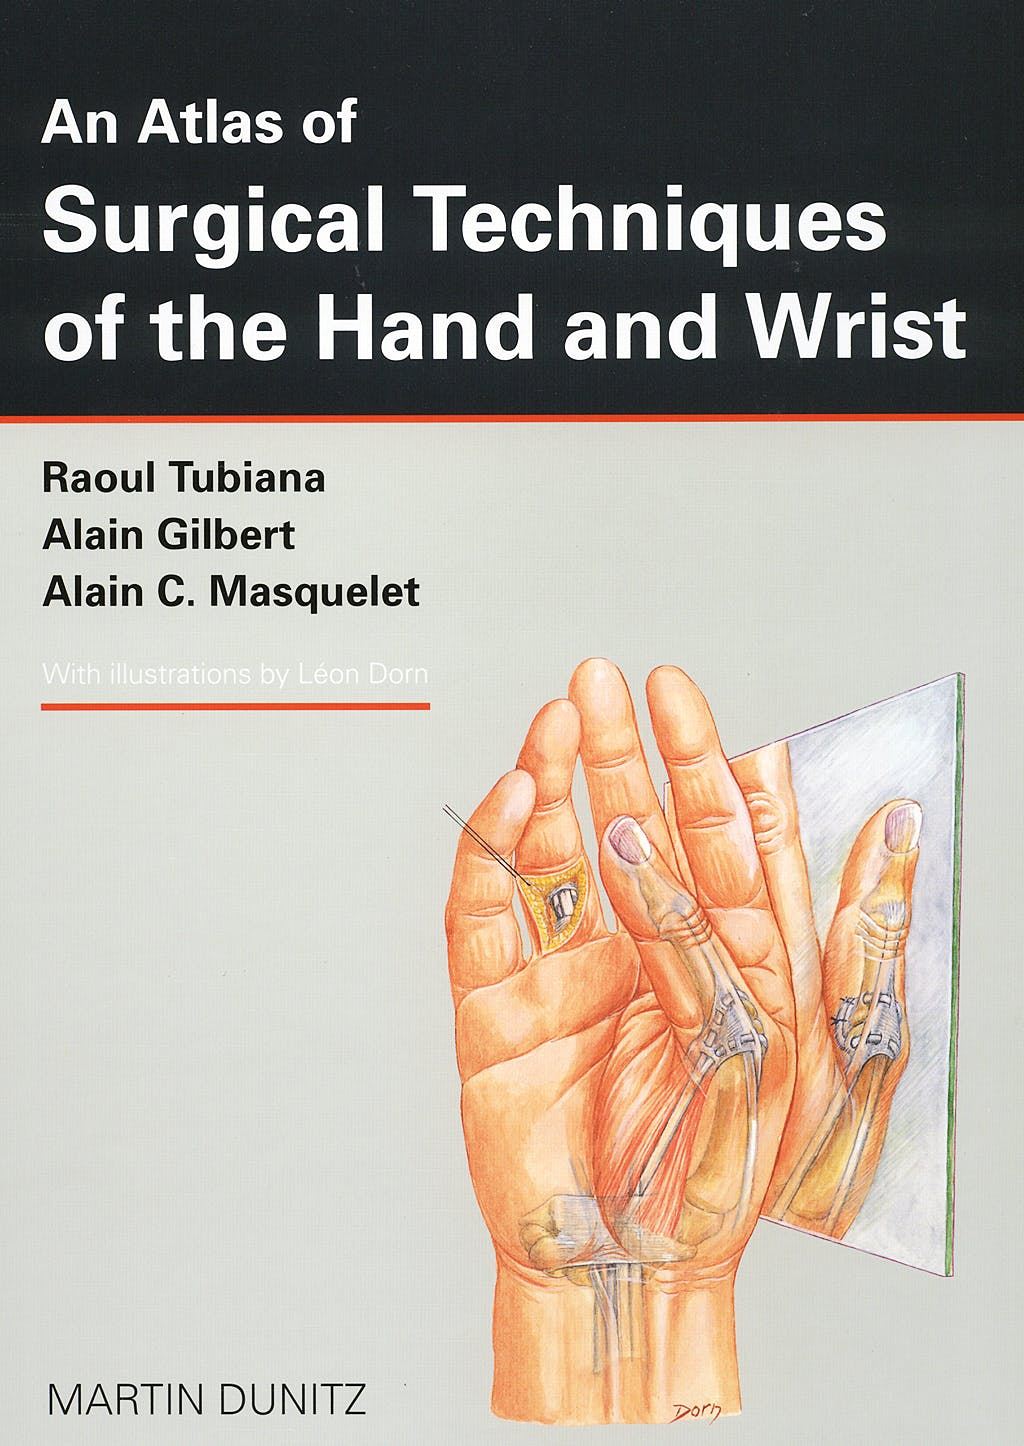 Producto: An Atlas of Surgical Techniques of the Hand and Wrist